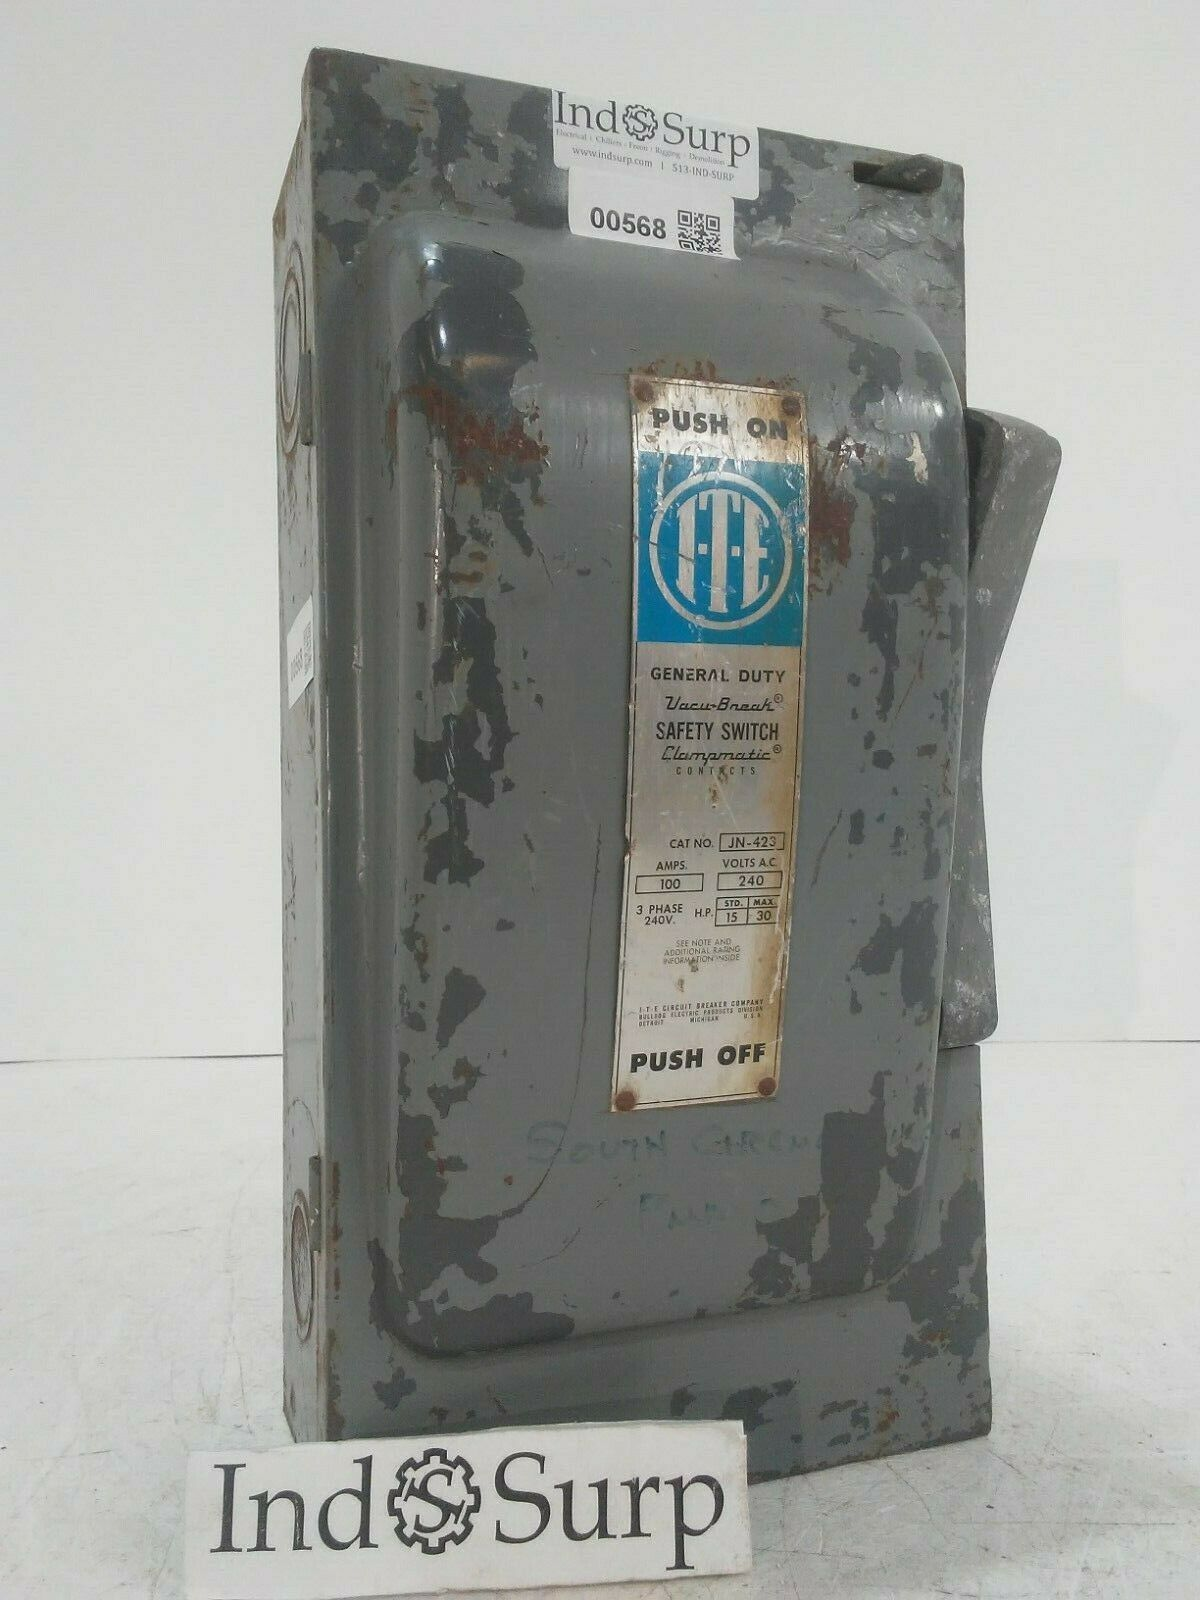 I-T-E 100 Amp Disconnect 240 Volt 3 Phase 3 Wire Fused